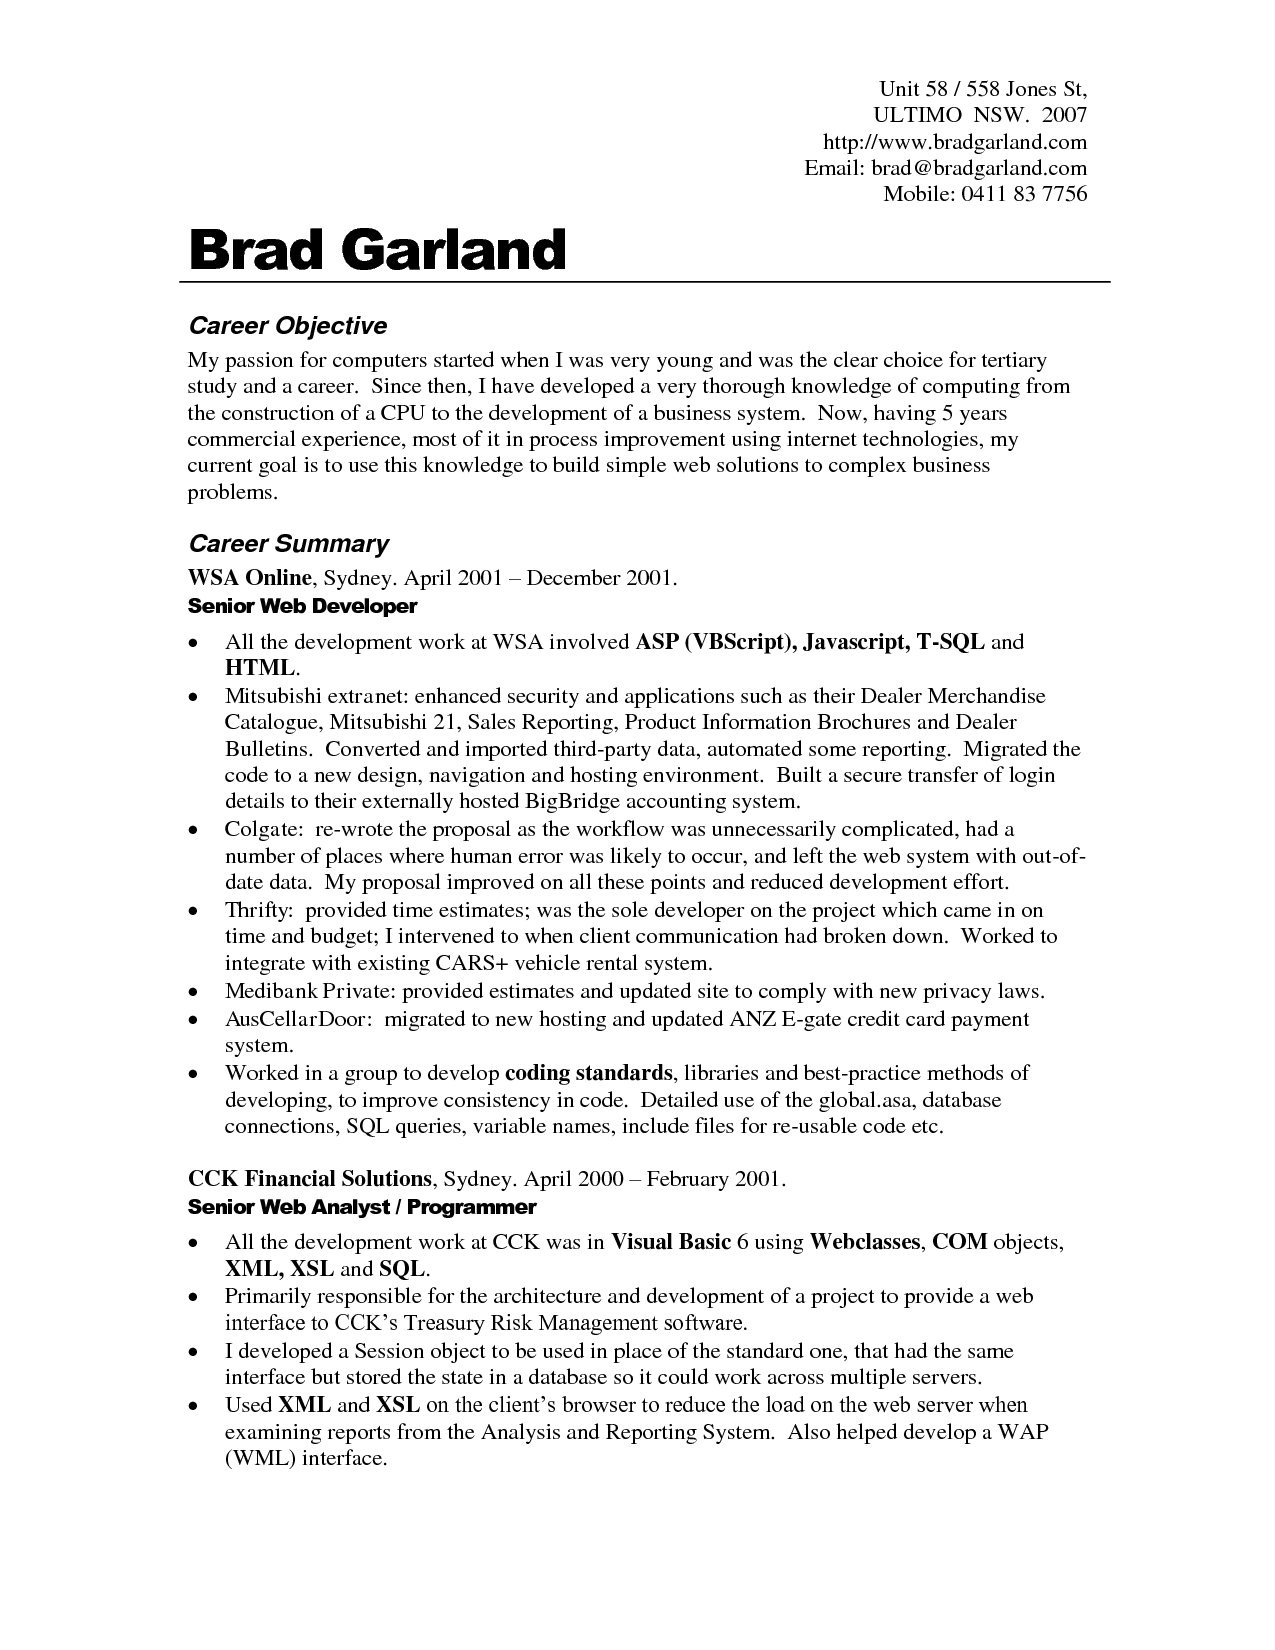 Job Objective For Resume Resume Objectives Examples Best Templateresume Objective Examples